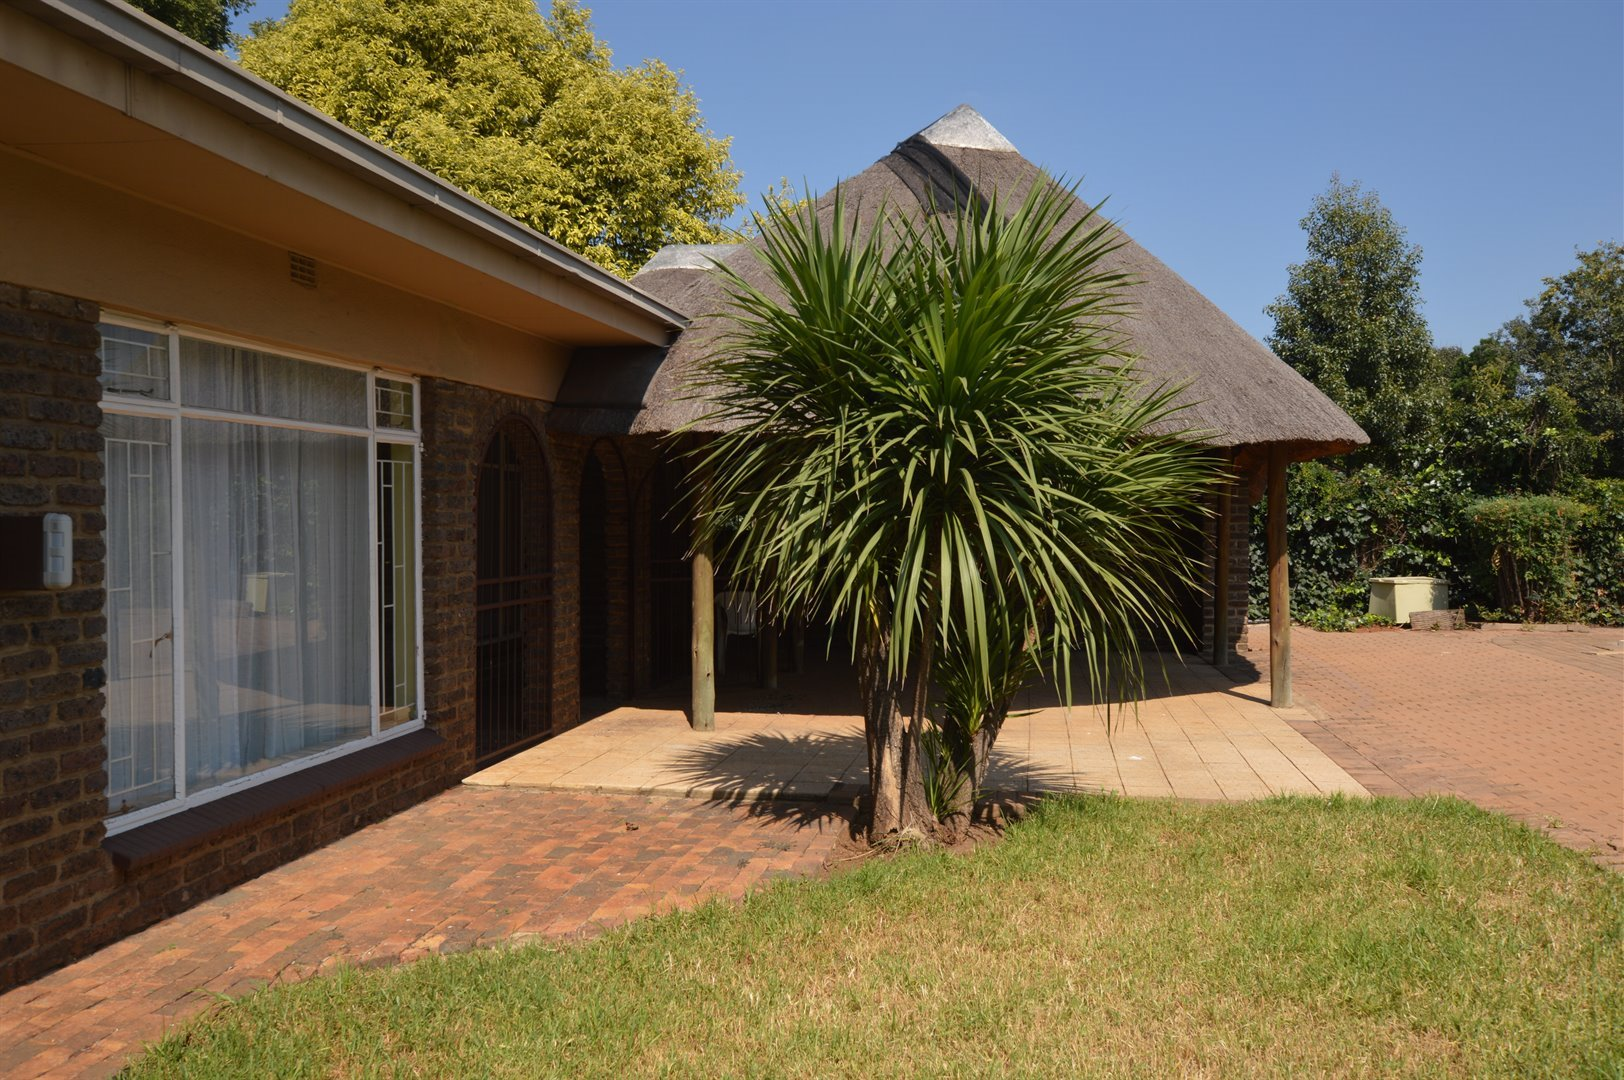 Vanderbijlpark Se 2 for sale property. Ref No: 13623209. Picture no 33